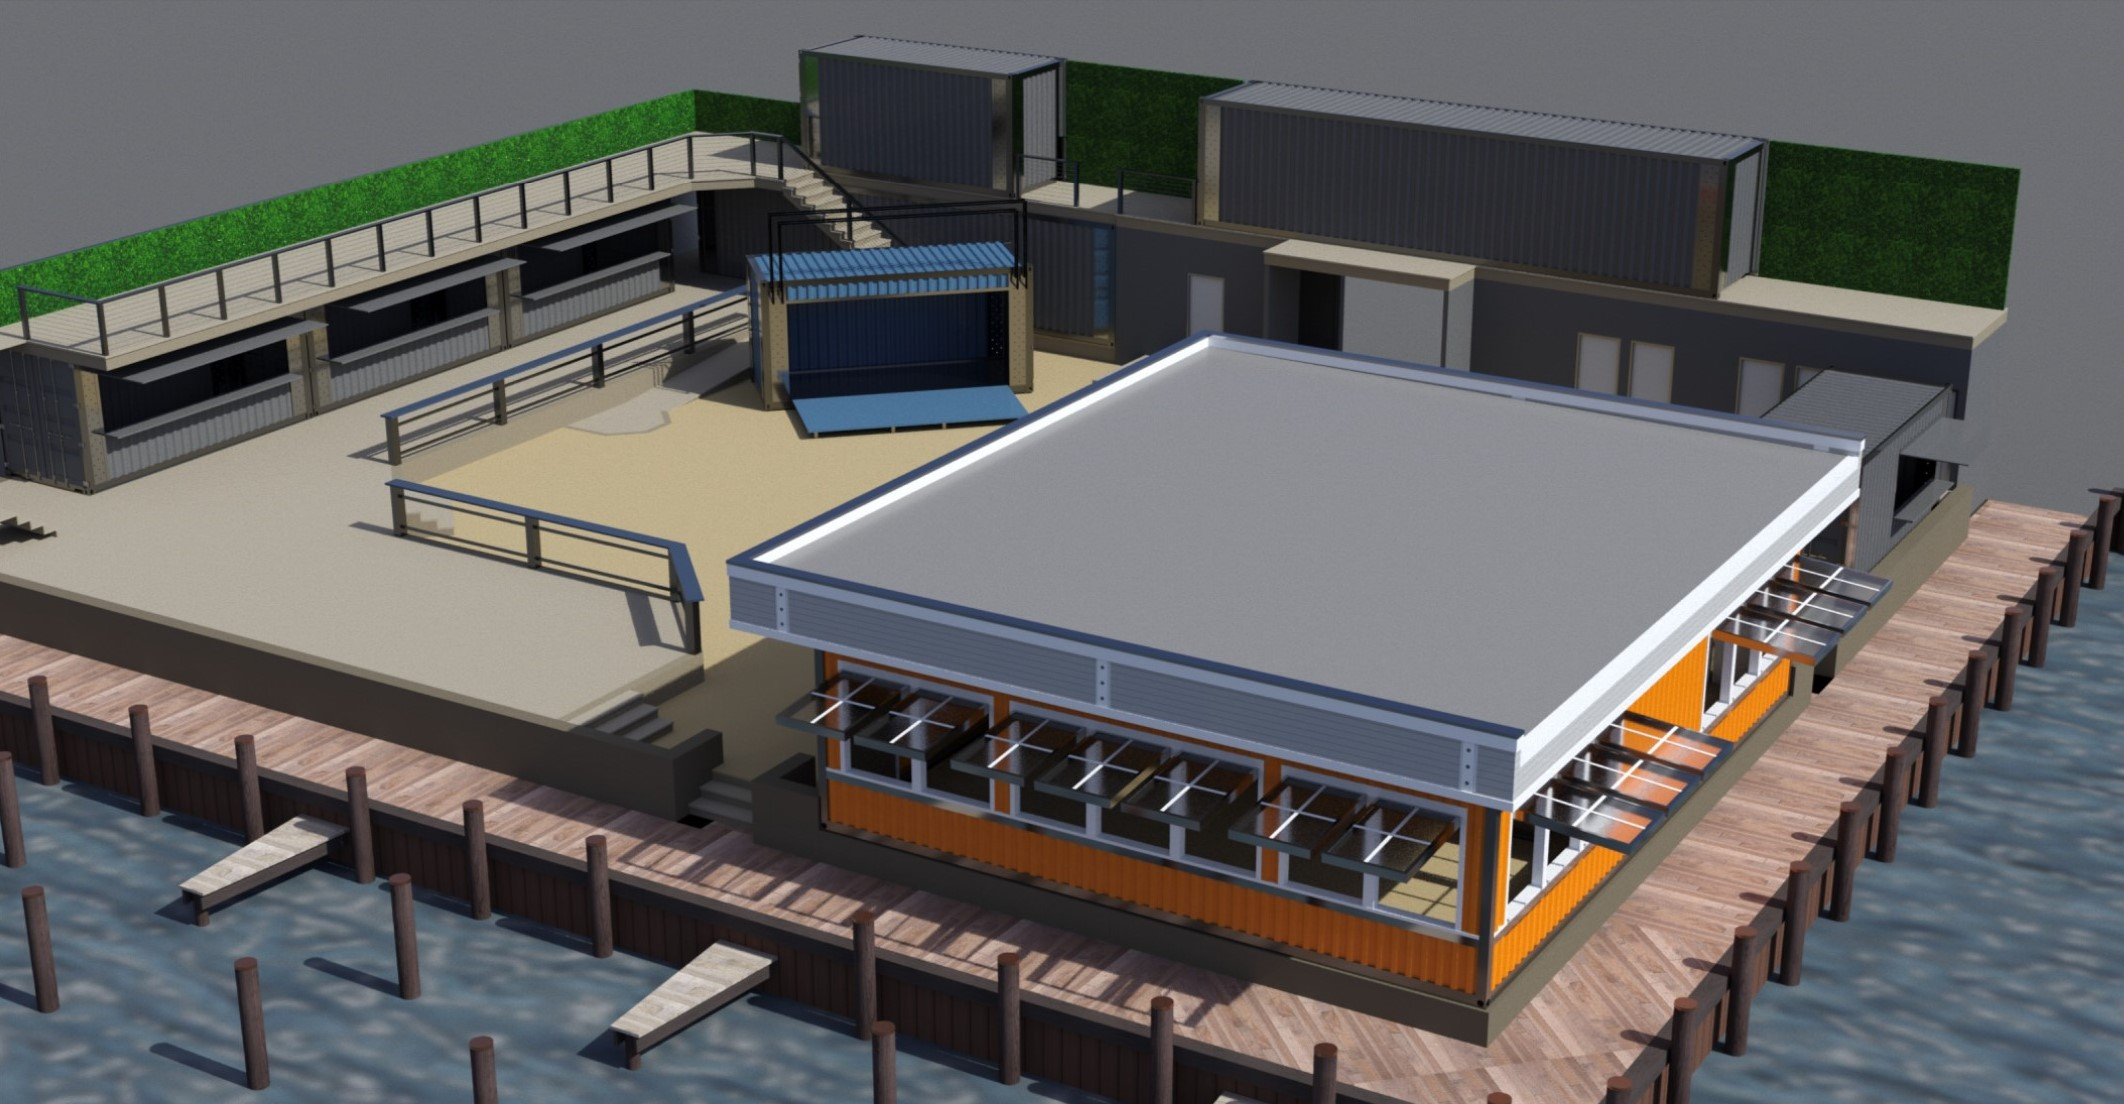 Pier 23 Plans In West OC Advance After License Board Approval